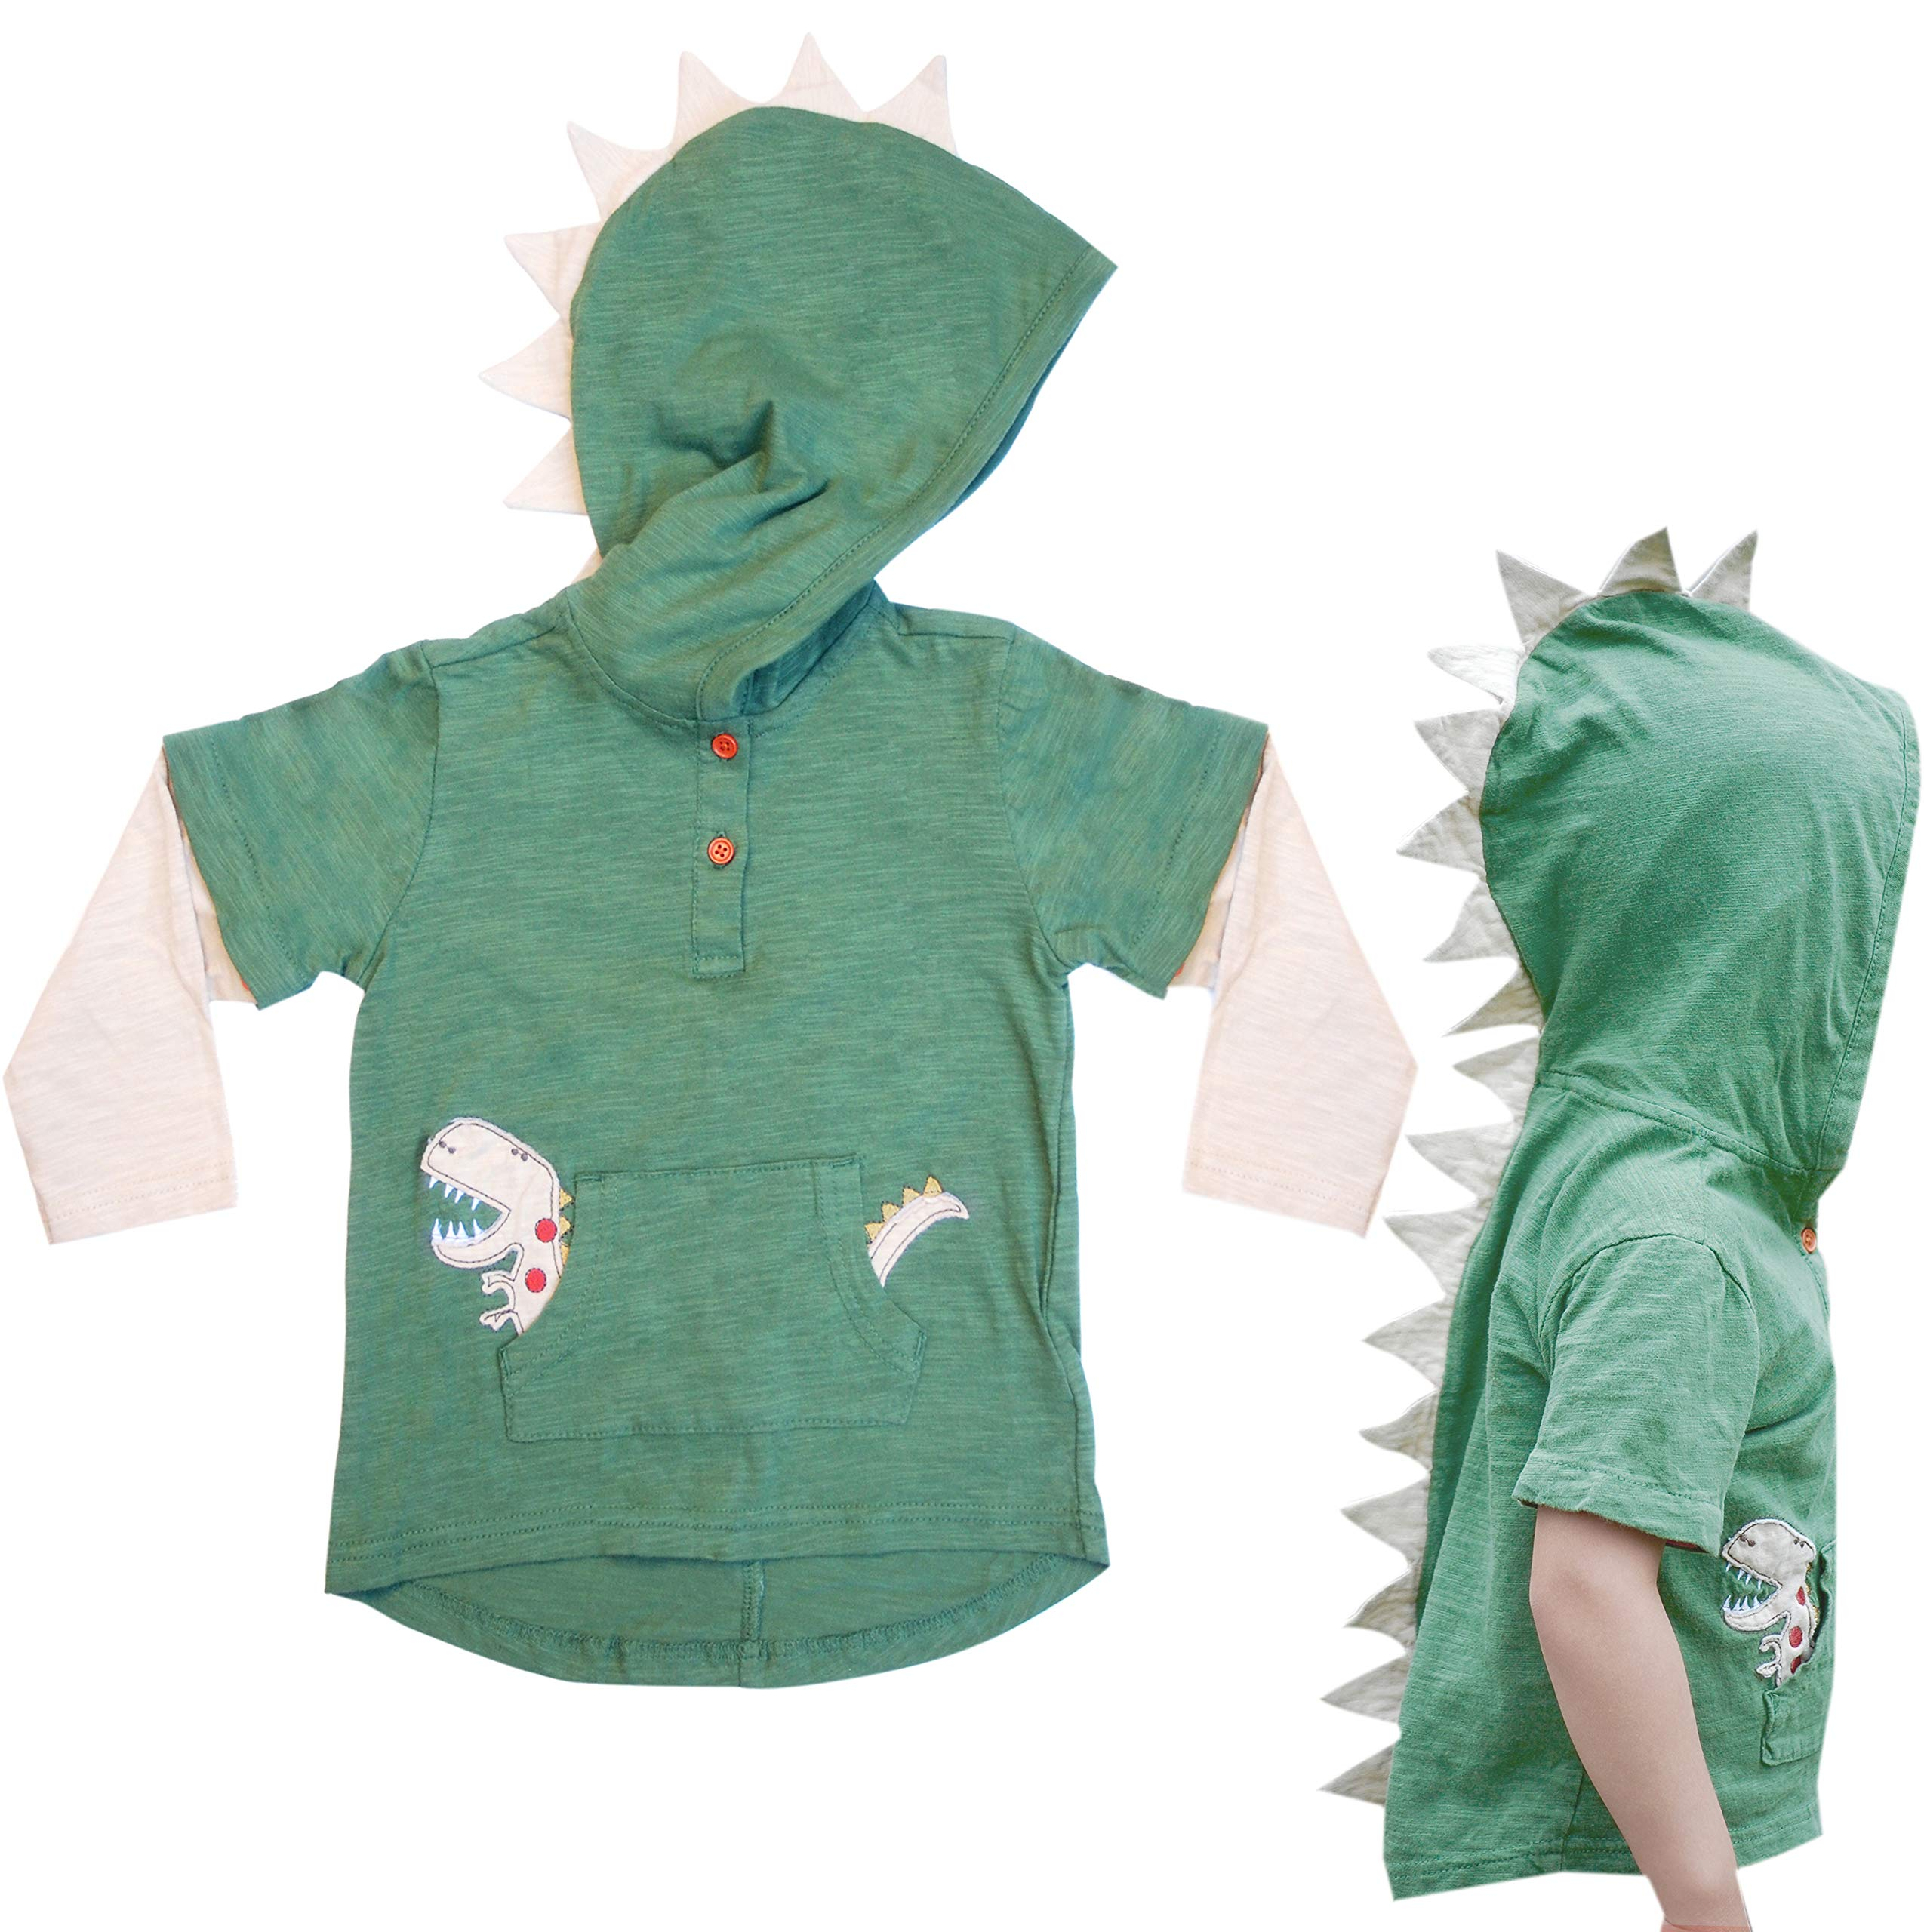 Mini Jiji Green T-Rex Dinosaur Toddler Hoodie with Removable Sleeves for Infant Toddlers Boys Girls Unisex (2 yrs, Green) by Mini Jiji